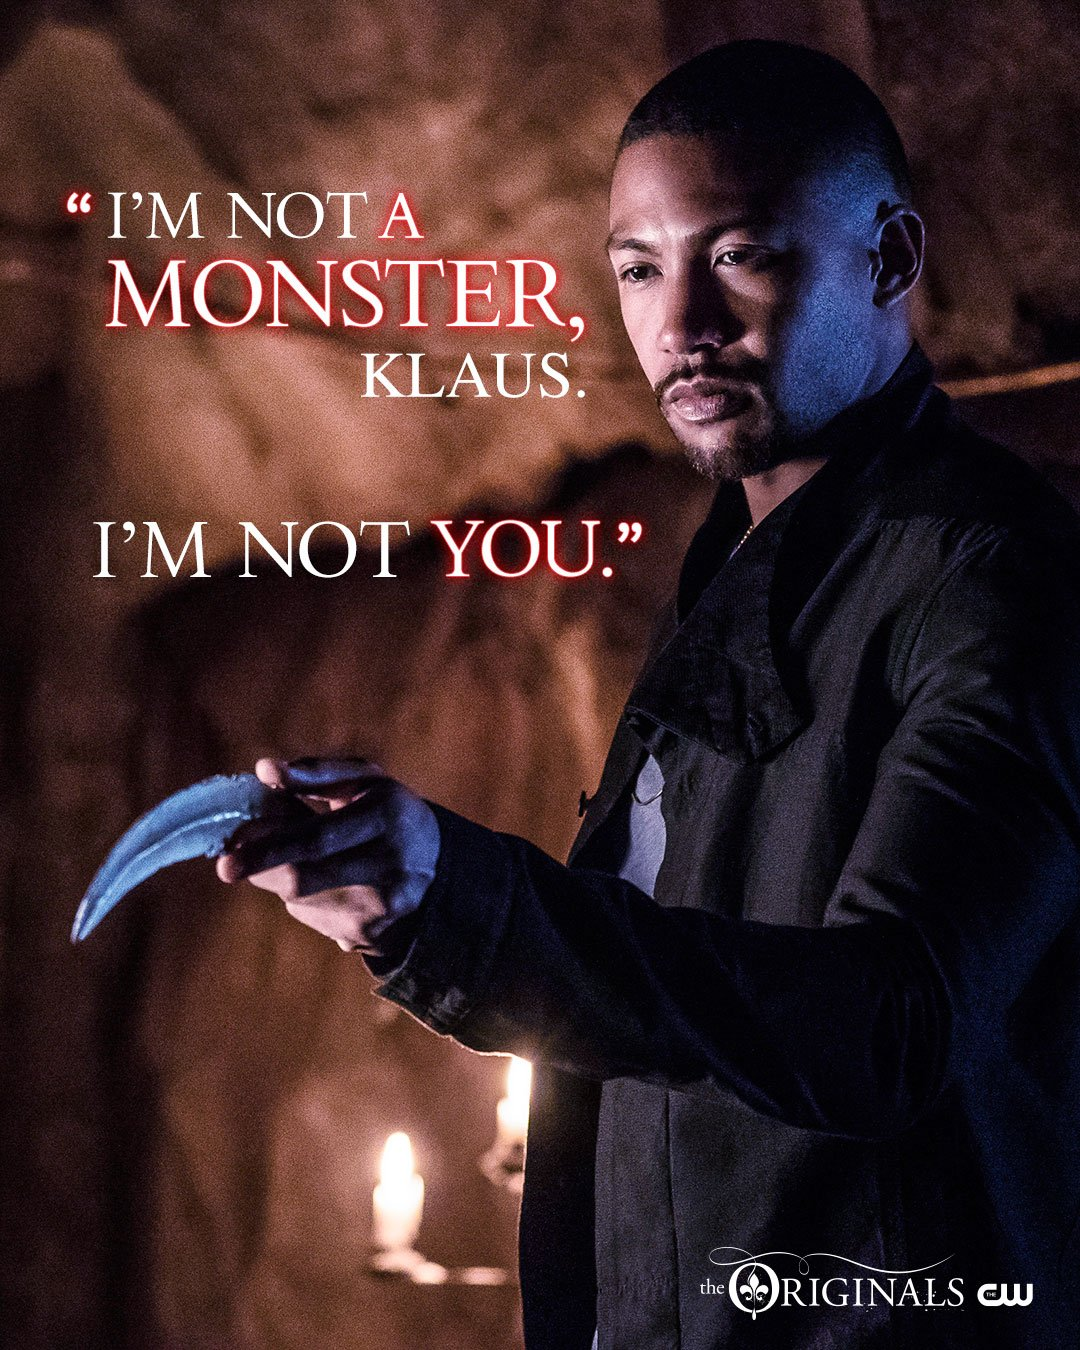 Friends. Brothers. Eternal enemies. #TheOriginals returns Wednesday, April 18 on The CW! https://t.co/nkTpJnCyHL